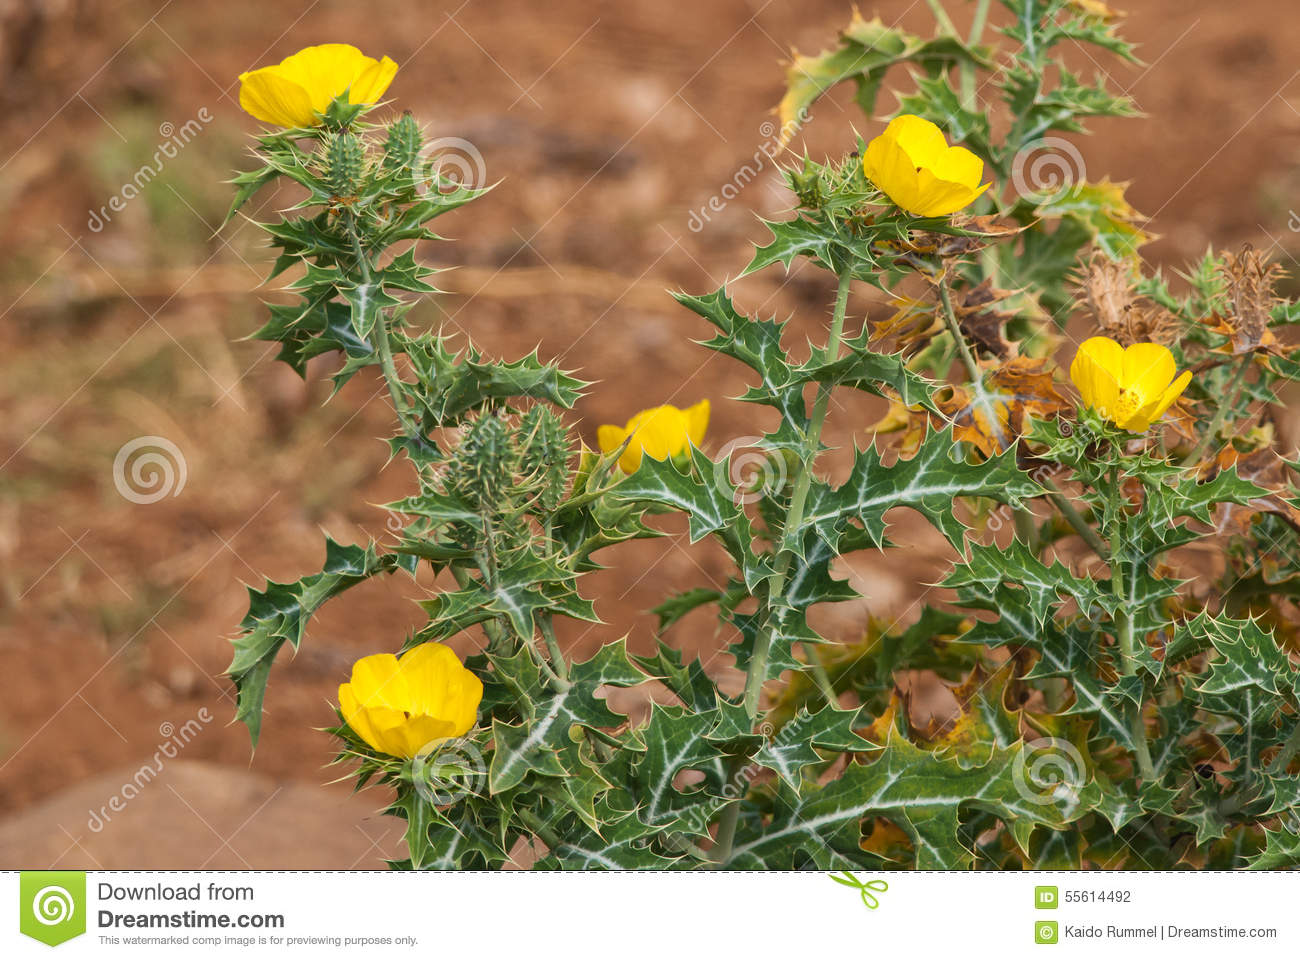 Argemone Mexicana Stock Photo.